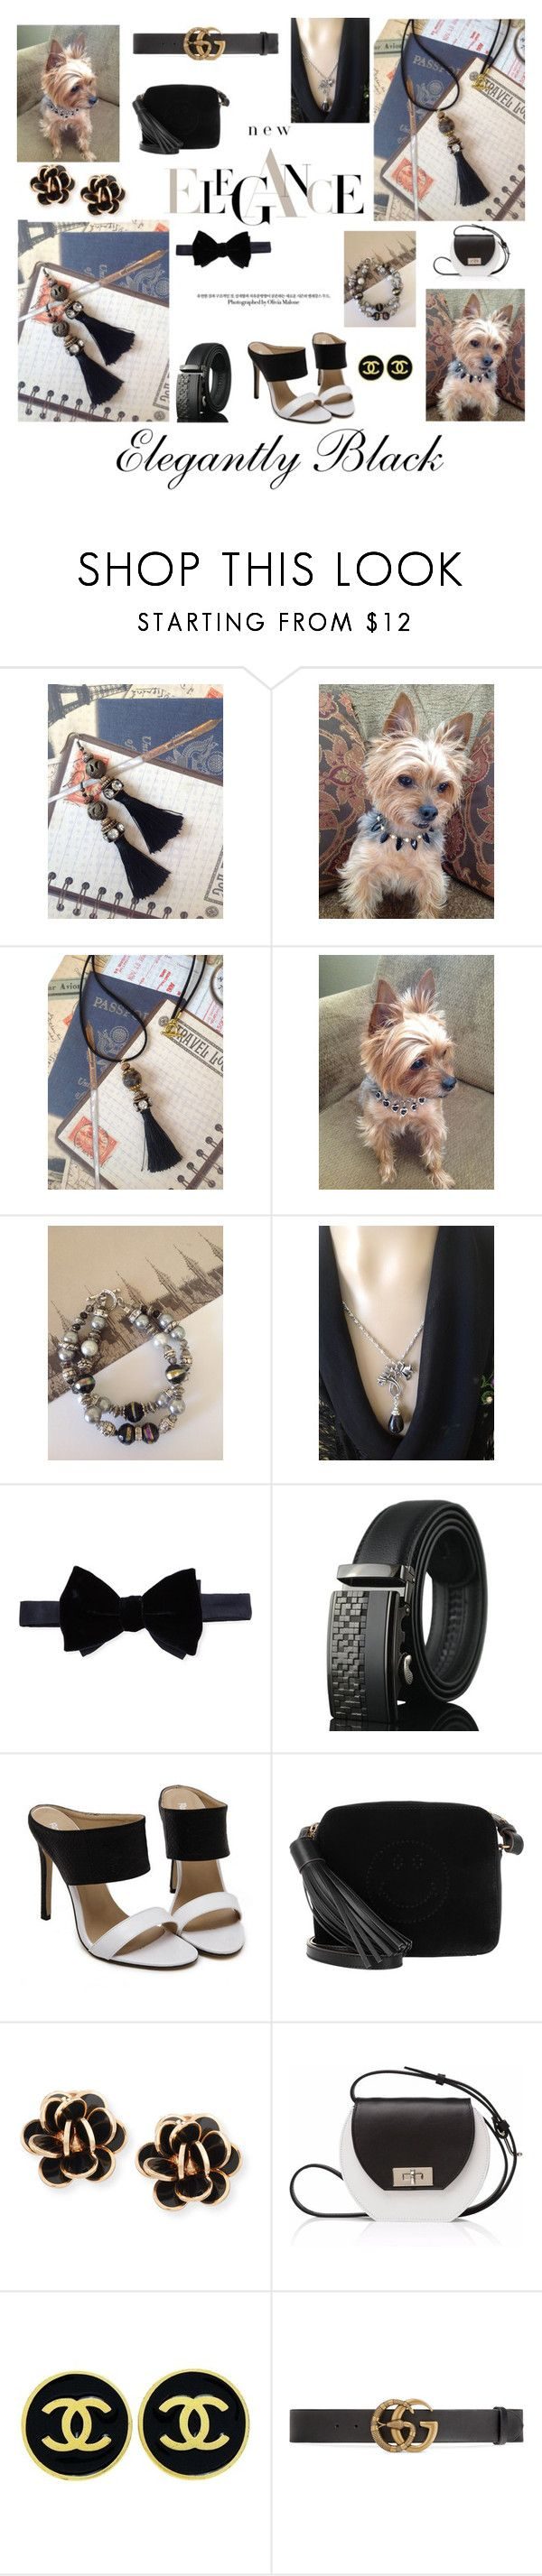 """""""Elegantly Black"""" by meeko789 on Polyvore featuring Lanvin, Anya Hindmarch, Chantecler, Joanna Maxham, Chanel and Gucci"""